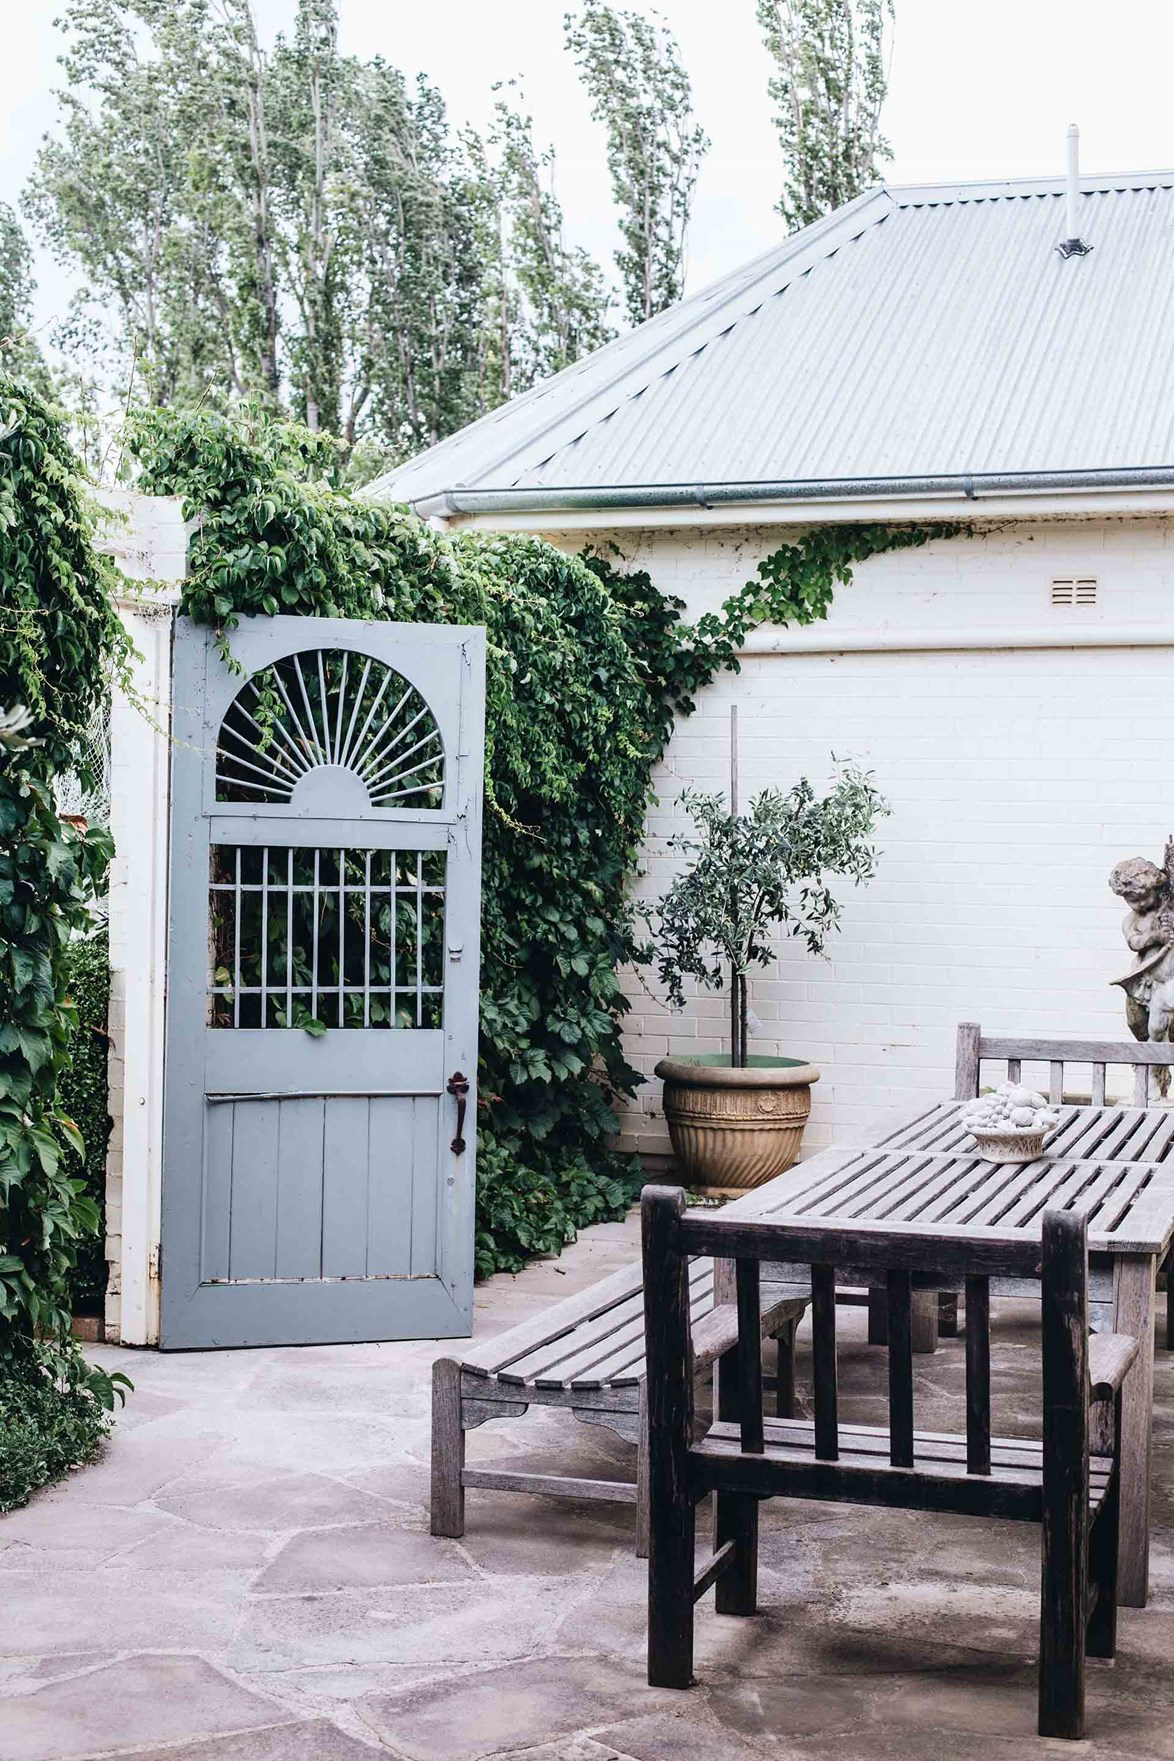 """After working on the farm all day, friends and family often pile in the back of the ute to enjoy a picnic outdoors in the paddock, or in this European-inspired outdoor courtyard with ivy-covered walls, at this [farmhouse in Boorowa, NSW](https://www.homestolove.com.au/boorowa-nsw-farmhouse-20756